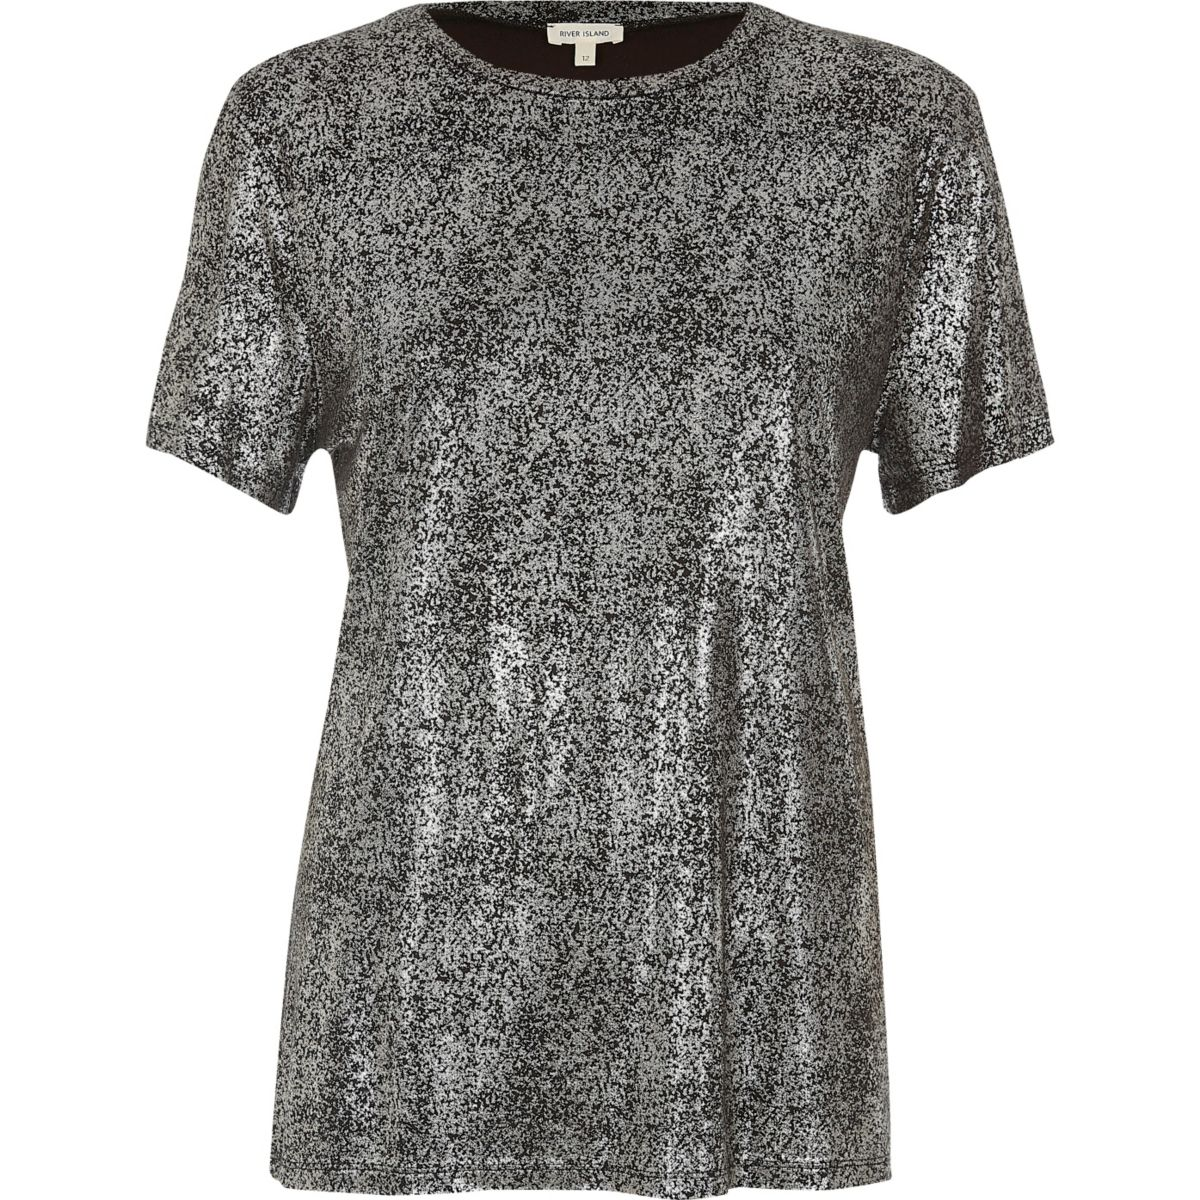 T-Shirt in Silber-Metallic